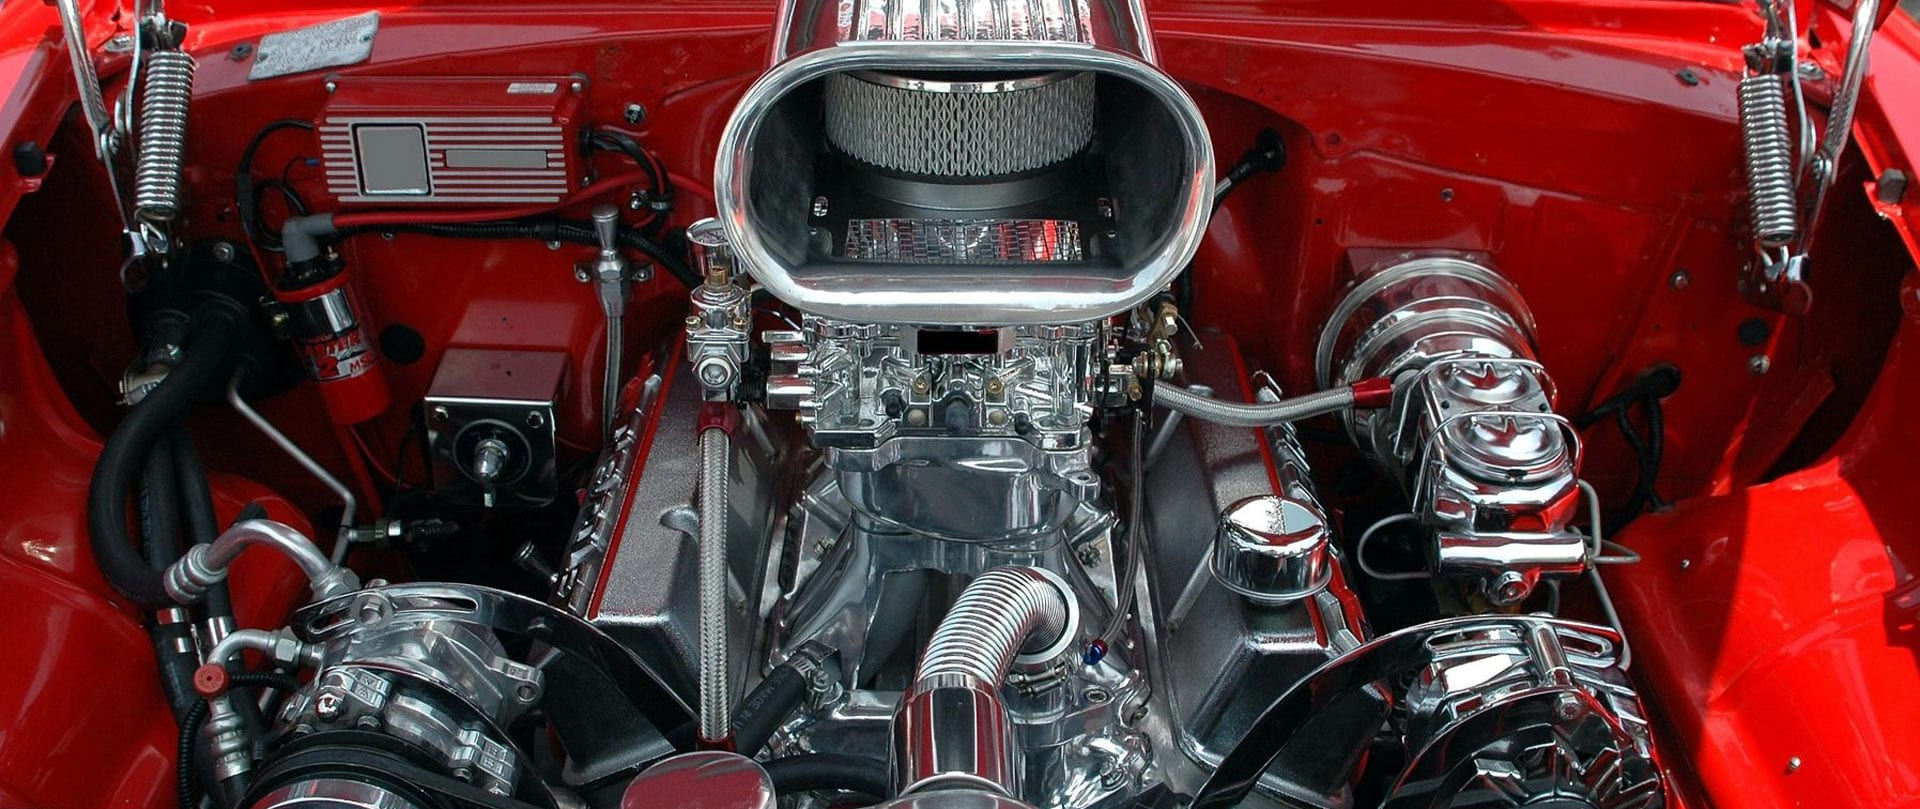 Clean muscle car engine.